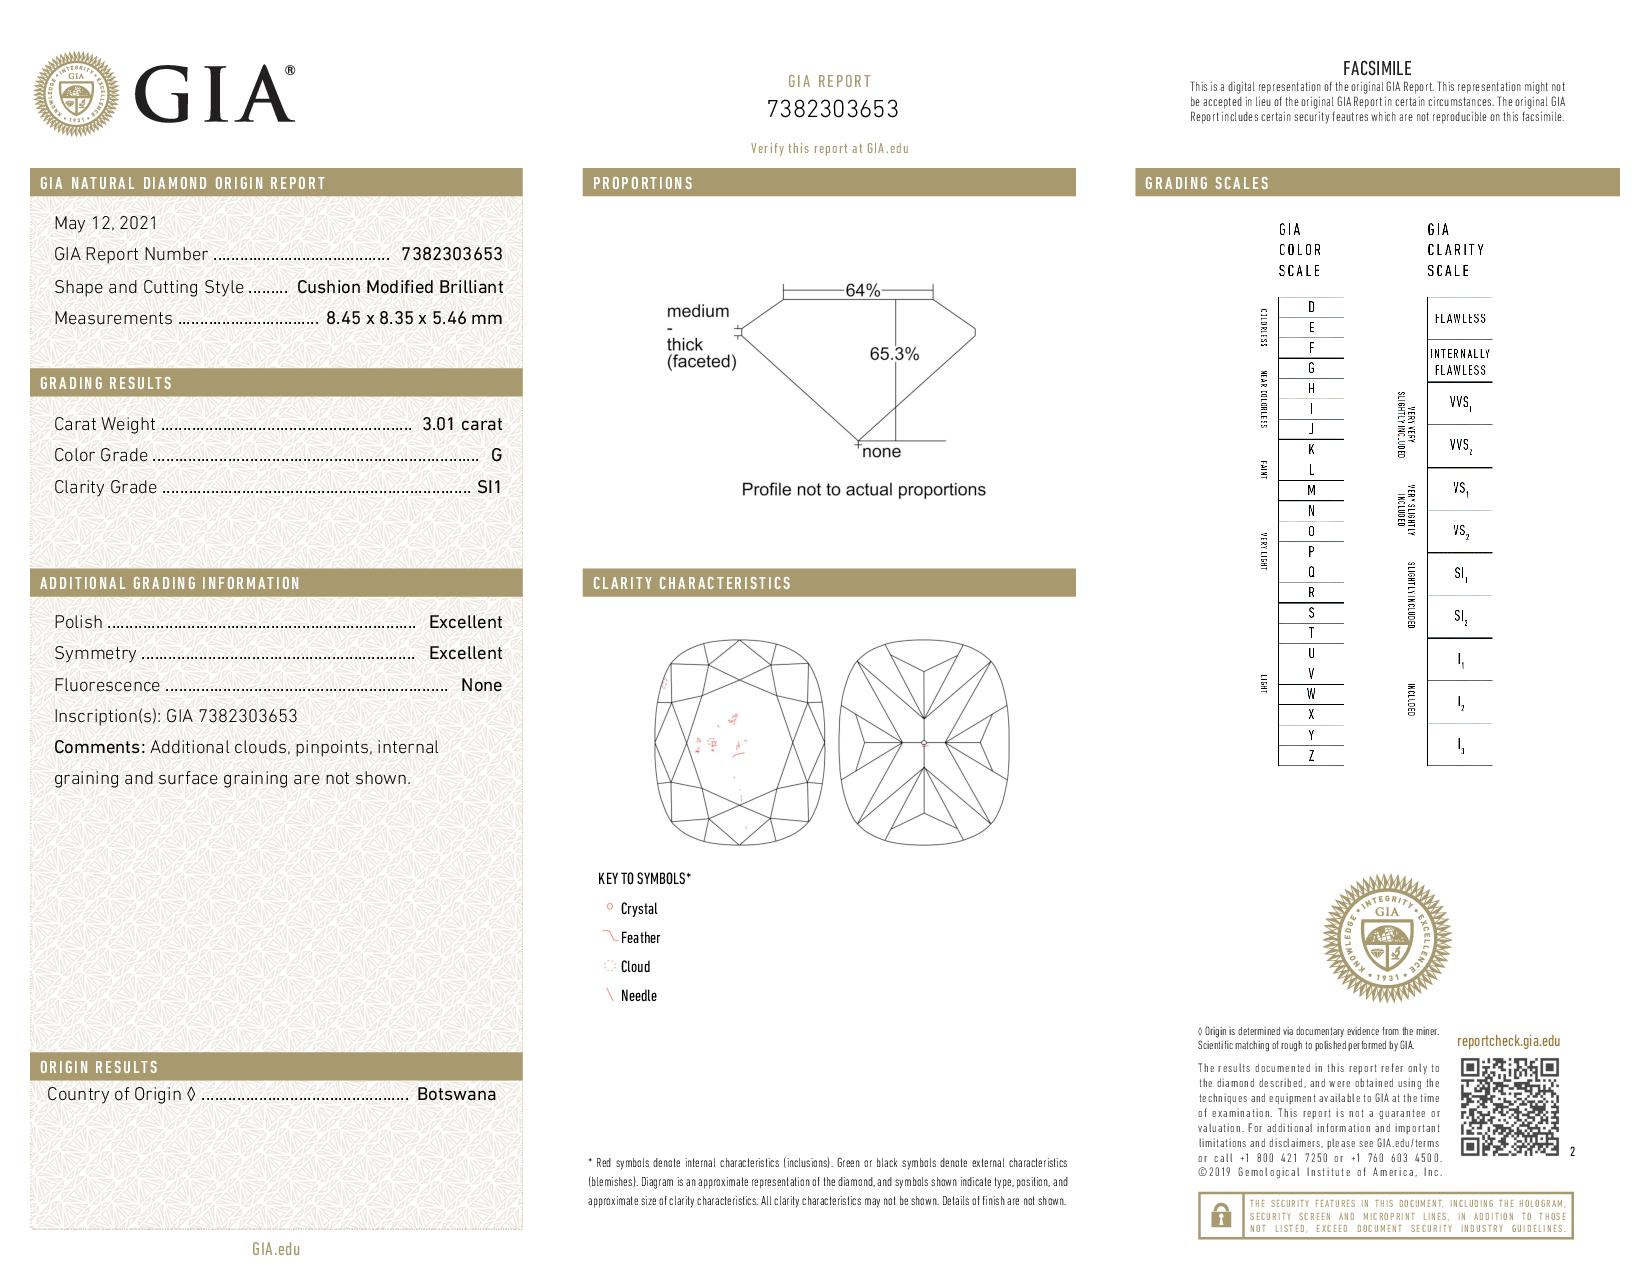 This is a 3.01 carat cushion shape, G color, SI1 clarity natural diamond accompanied by a GIA grading report.